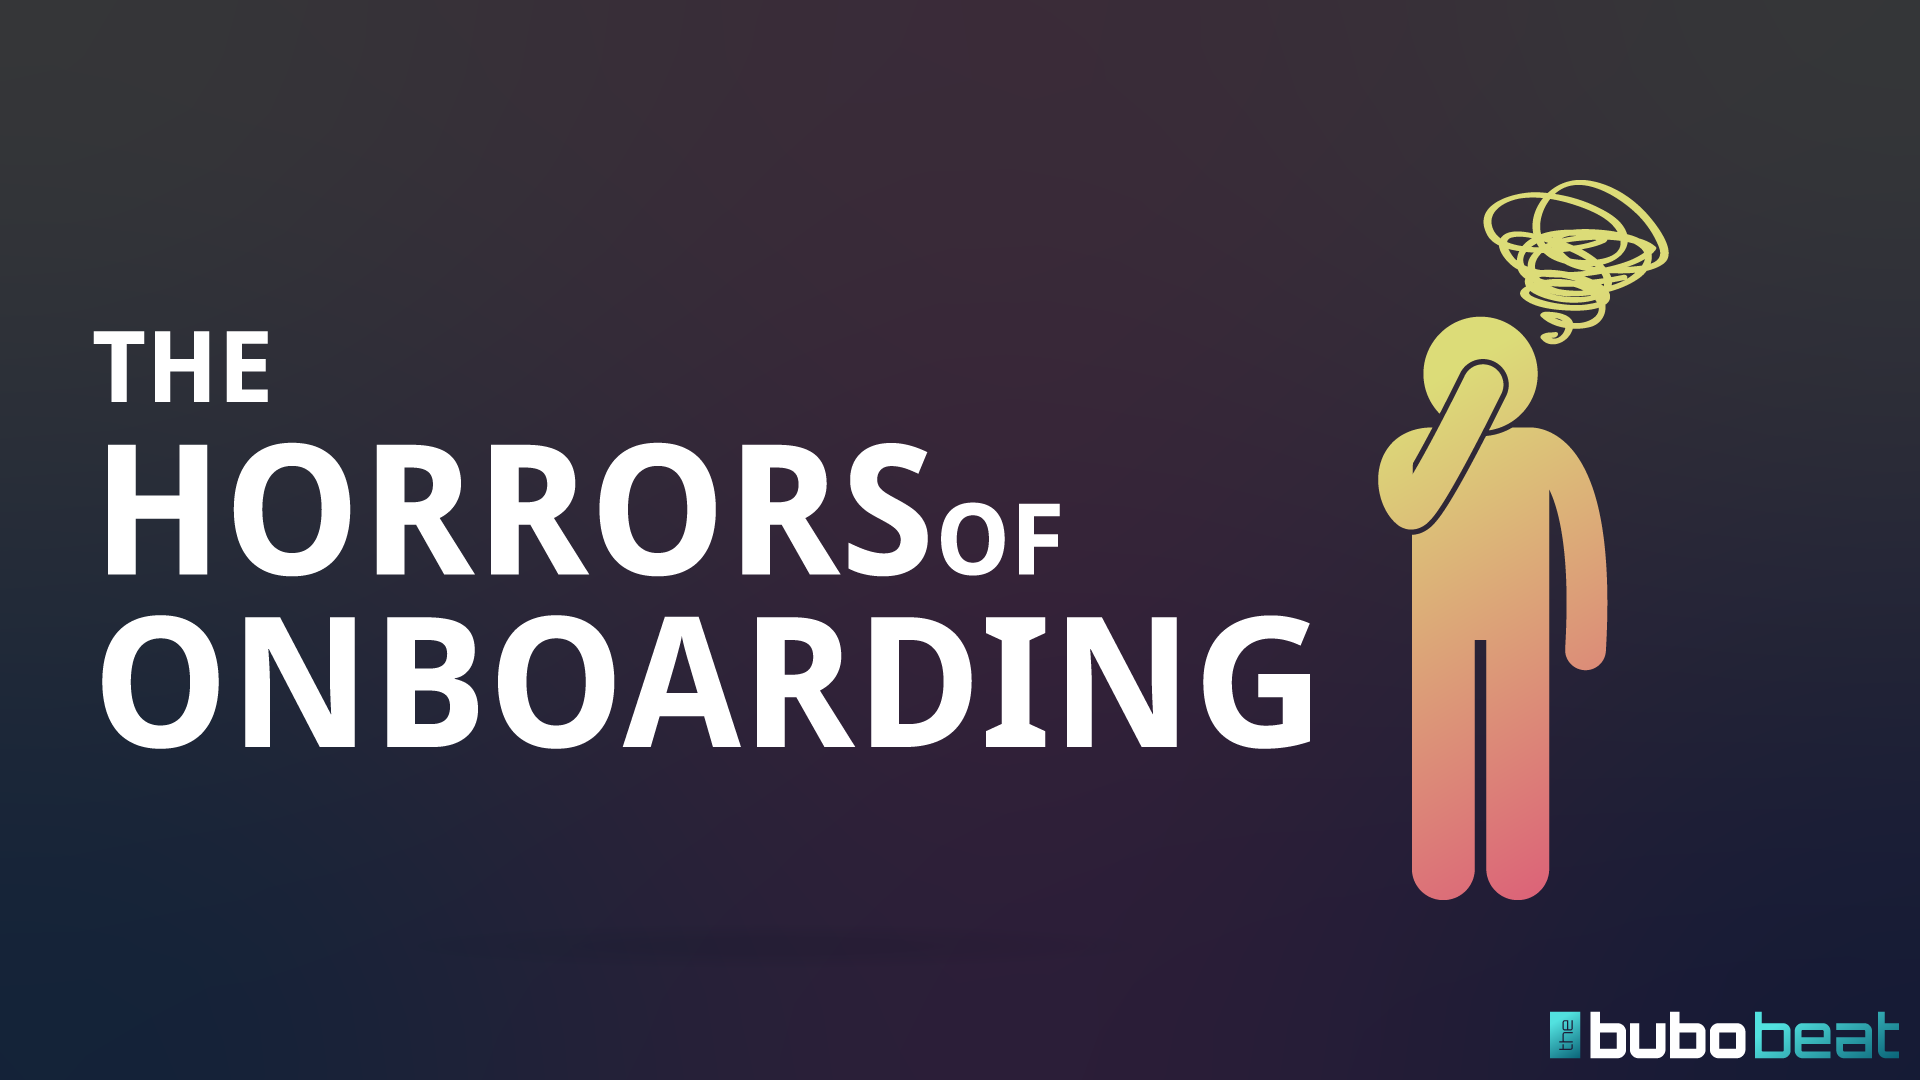 The horrors of onboarding